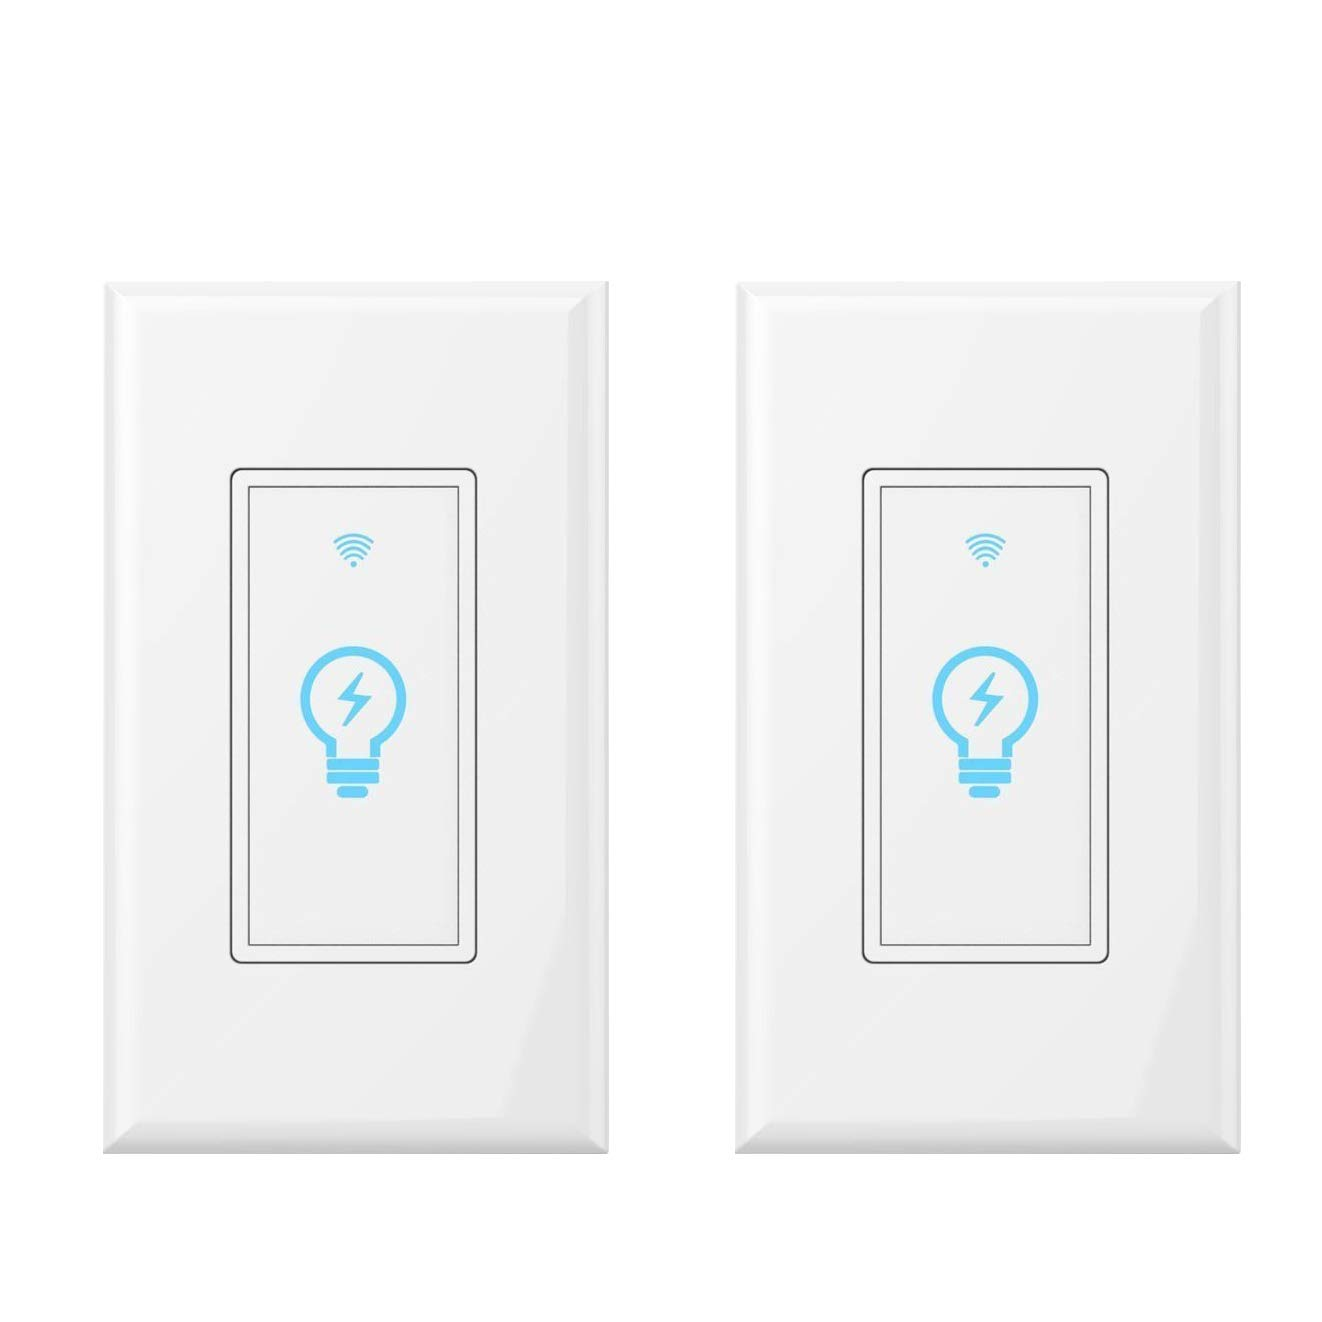 Smart Light Switch, Works with Amazon Alexa, Google Home IFTTT, App and Voice control, timing function, No Hub required, suitable for 2/3/4 box, neutral wire needs MICMI (Smart Switch 2pack)